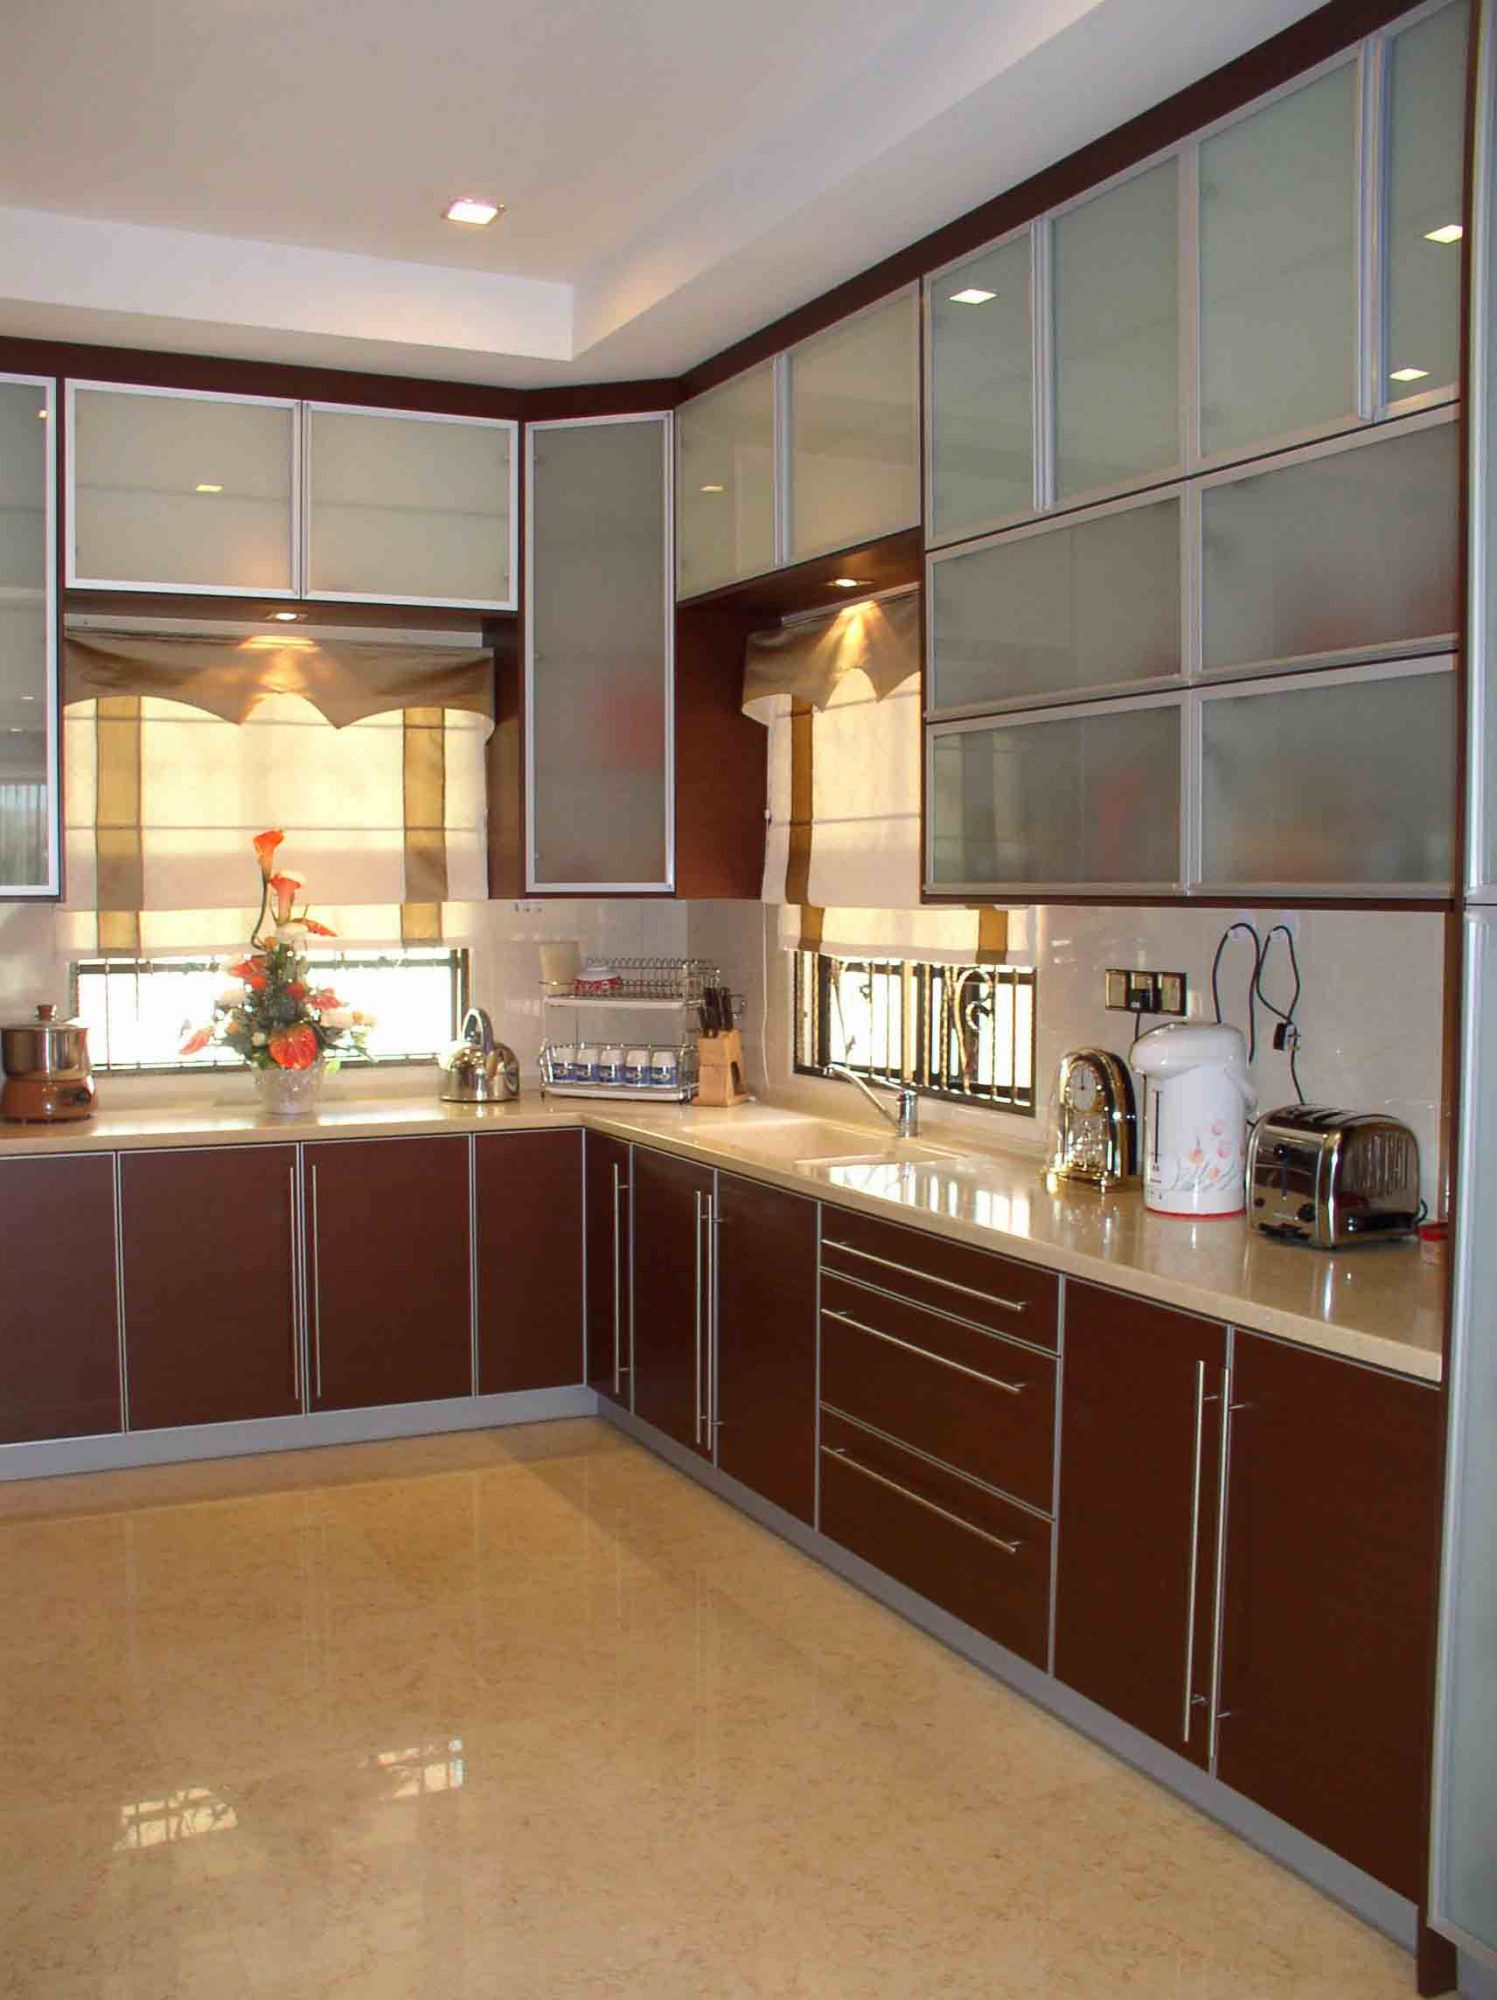 kitchen cabinets design ideas malaysia 20 popular kitchen cabinet designs in malaysia recommend 817